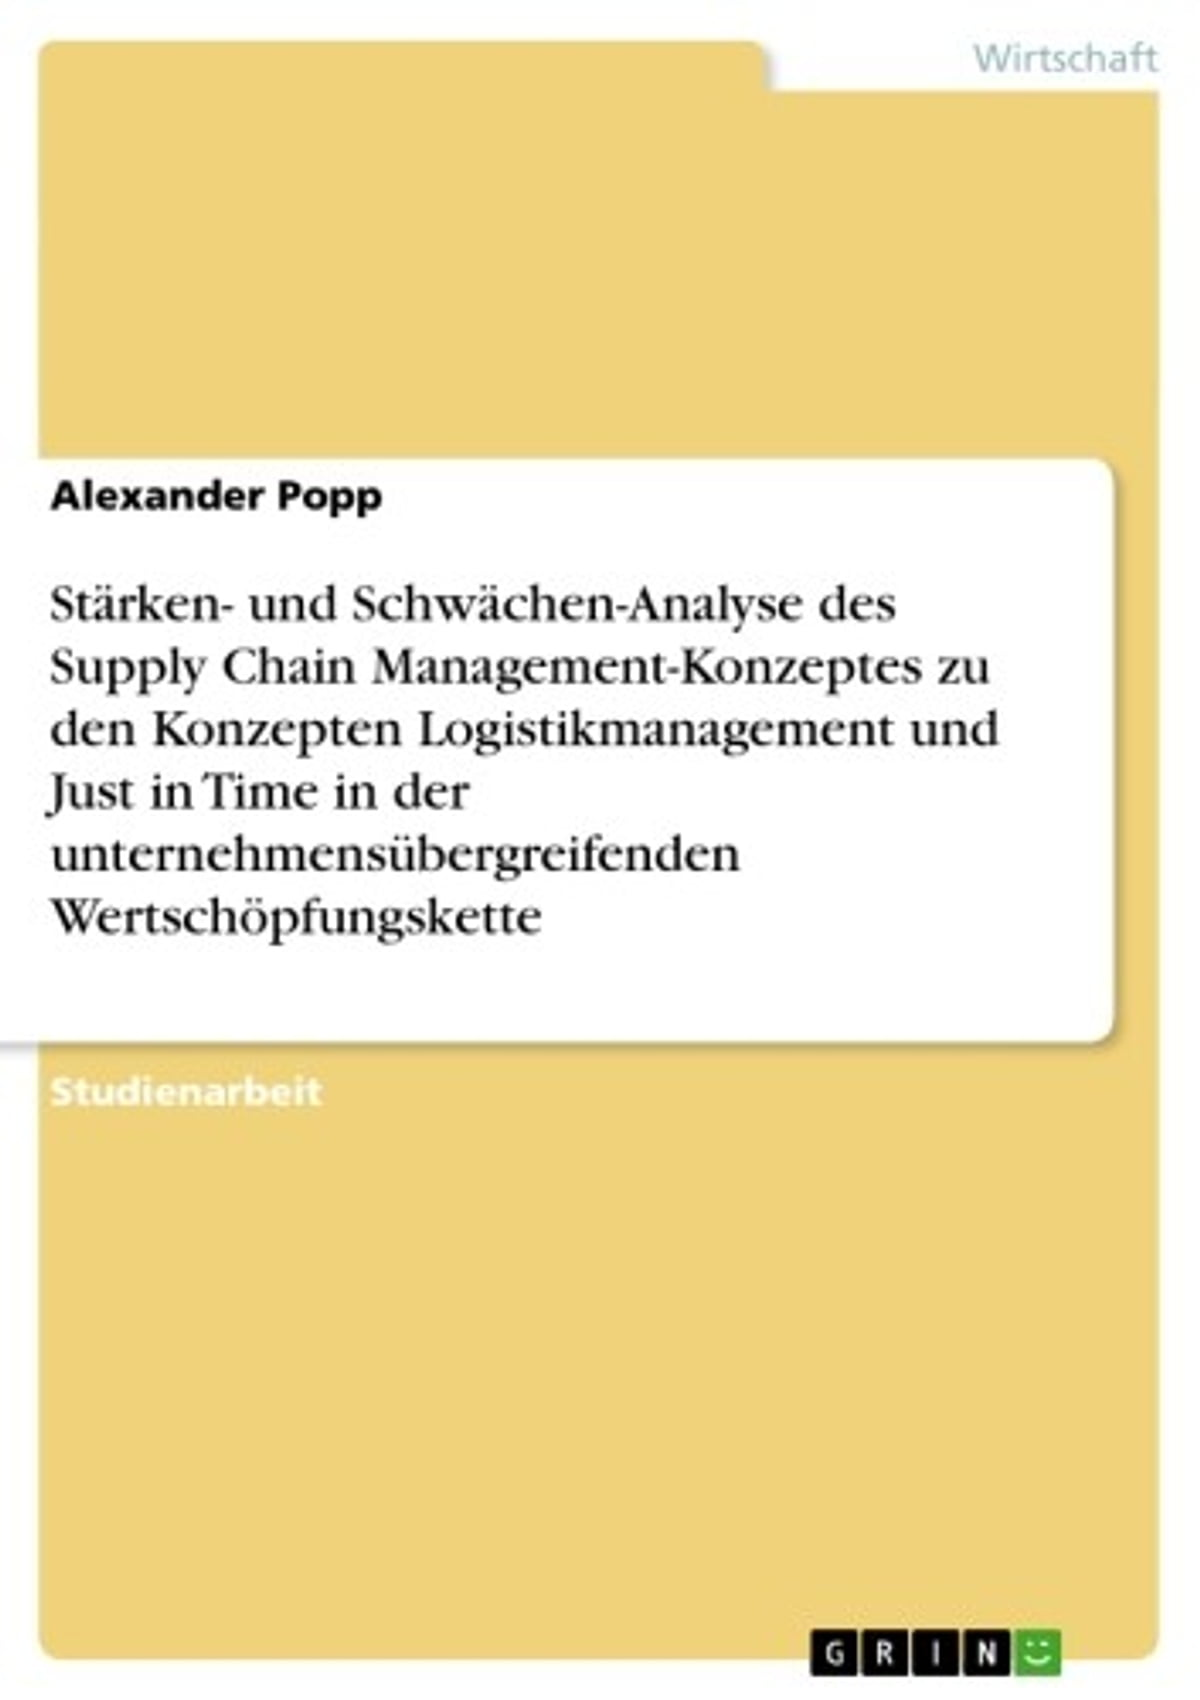 Stärken Und Schwächen Stärken Und Schwächen Analyse Des Supply Chain Management Konzeptes Zu Den Konzepten Logistikmanagement Und Just In Time In Der